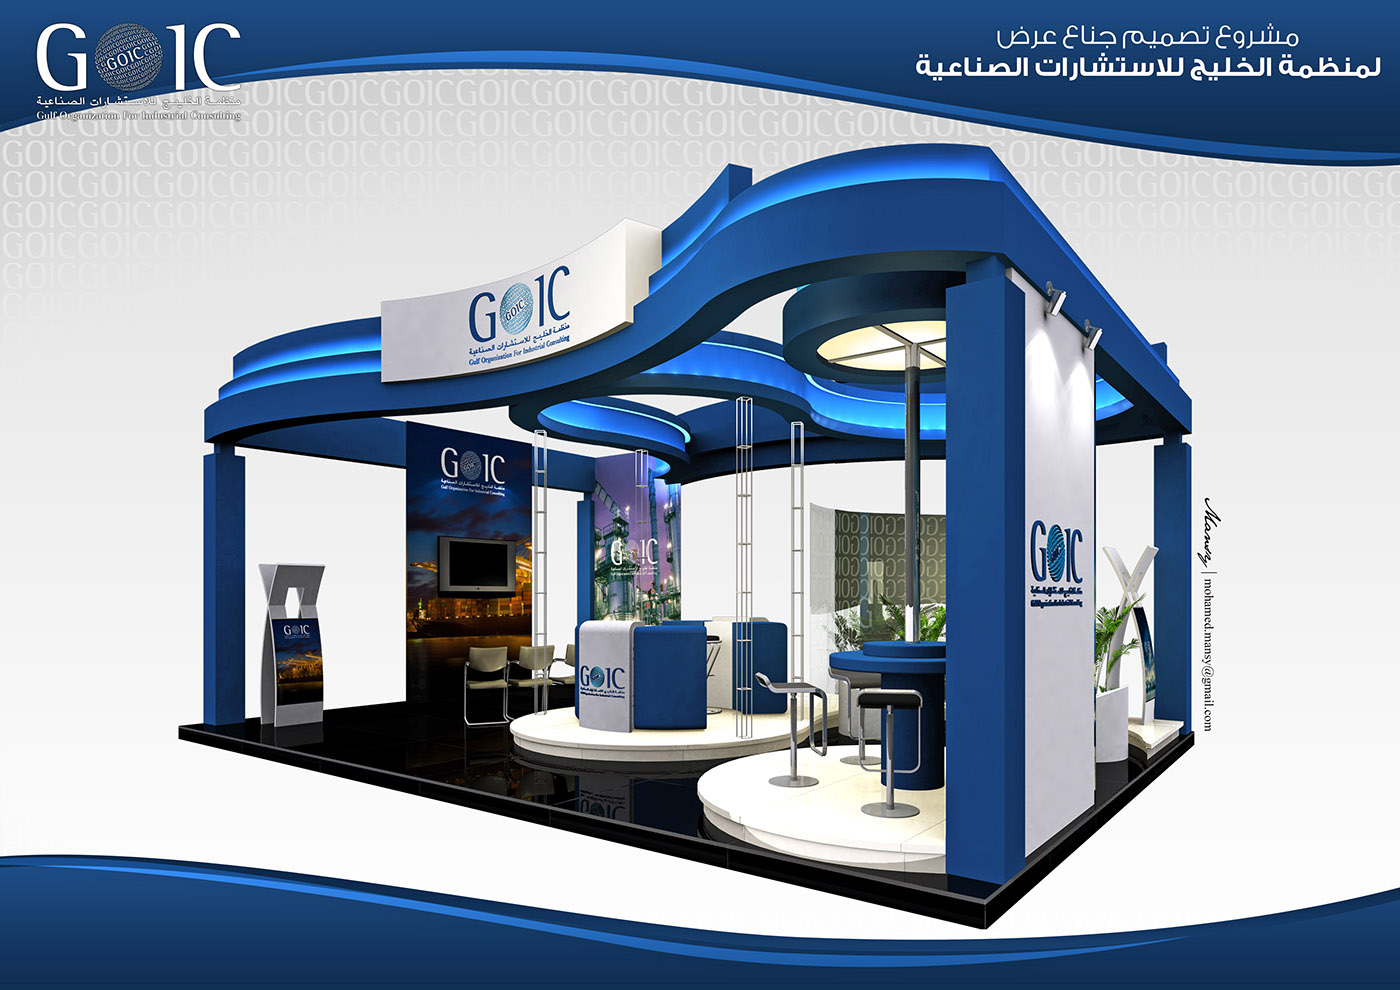 Exhibition Booth Behance : Goic exhibition booth on behance